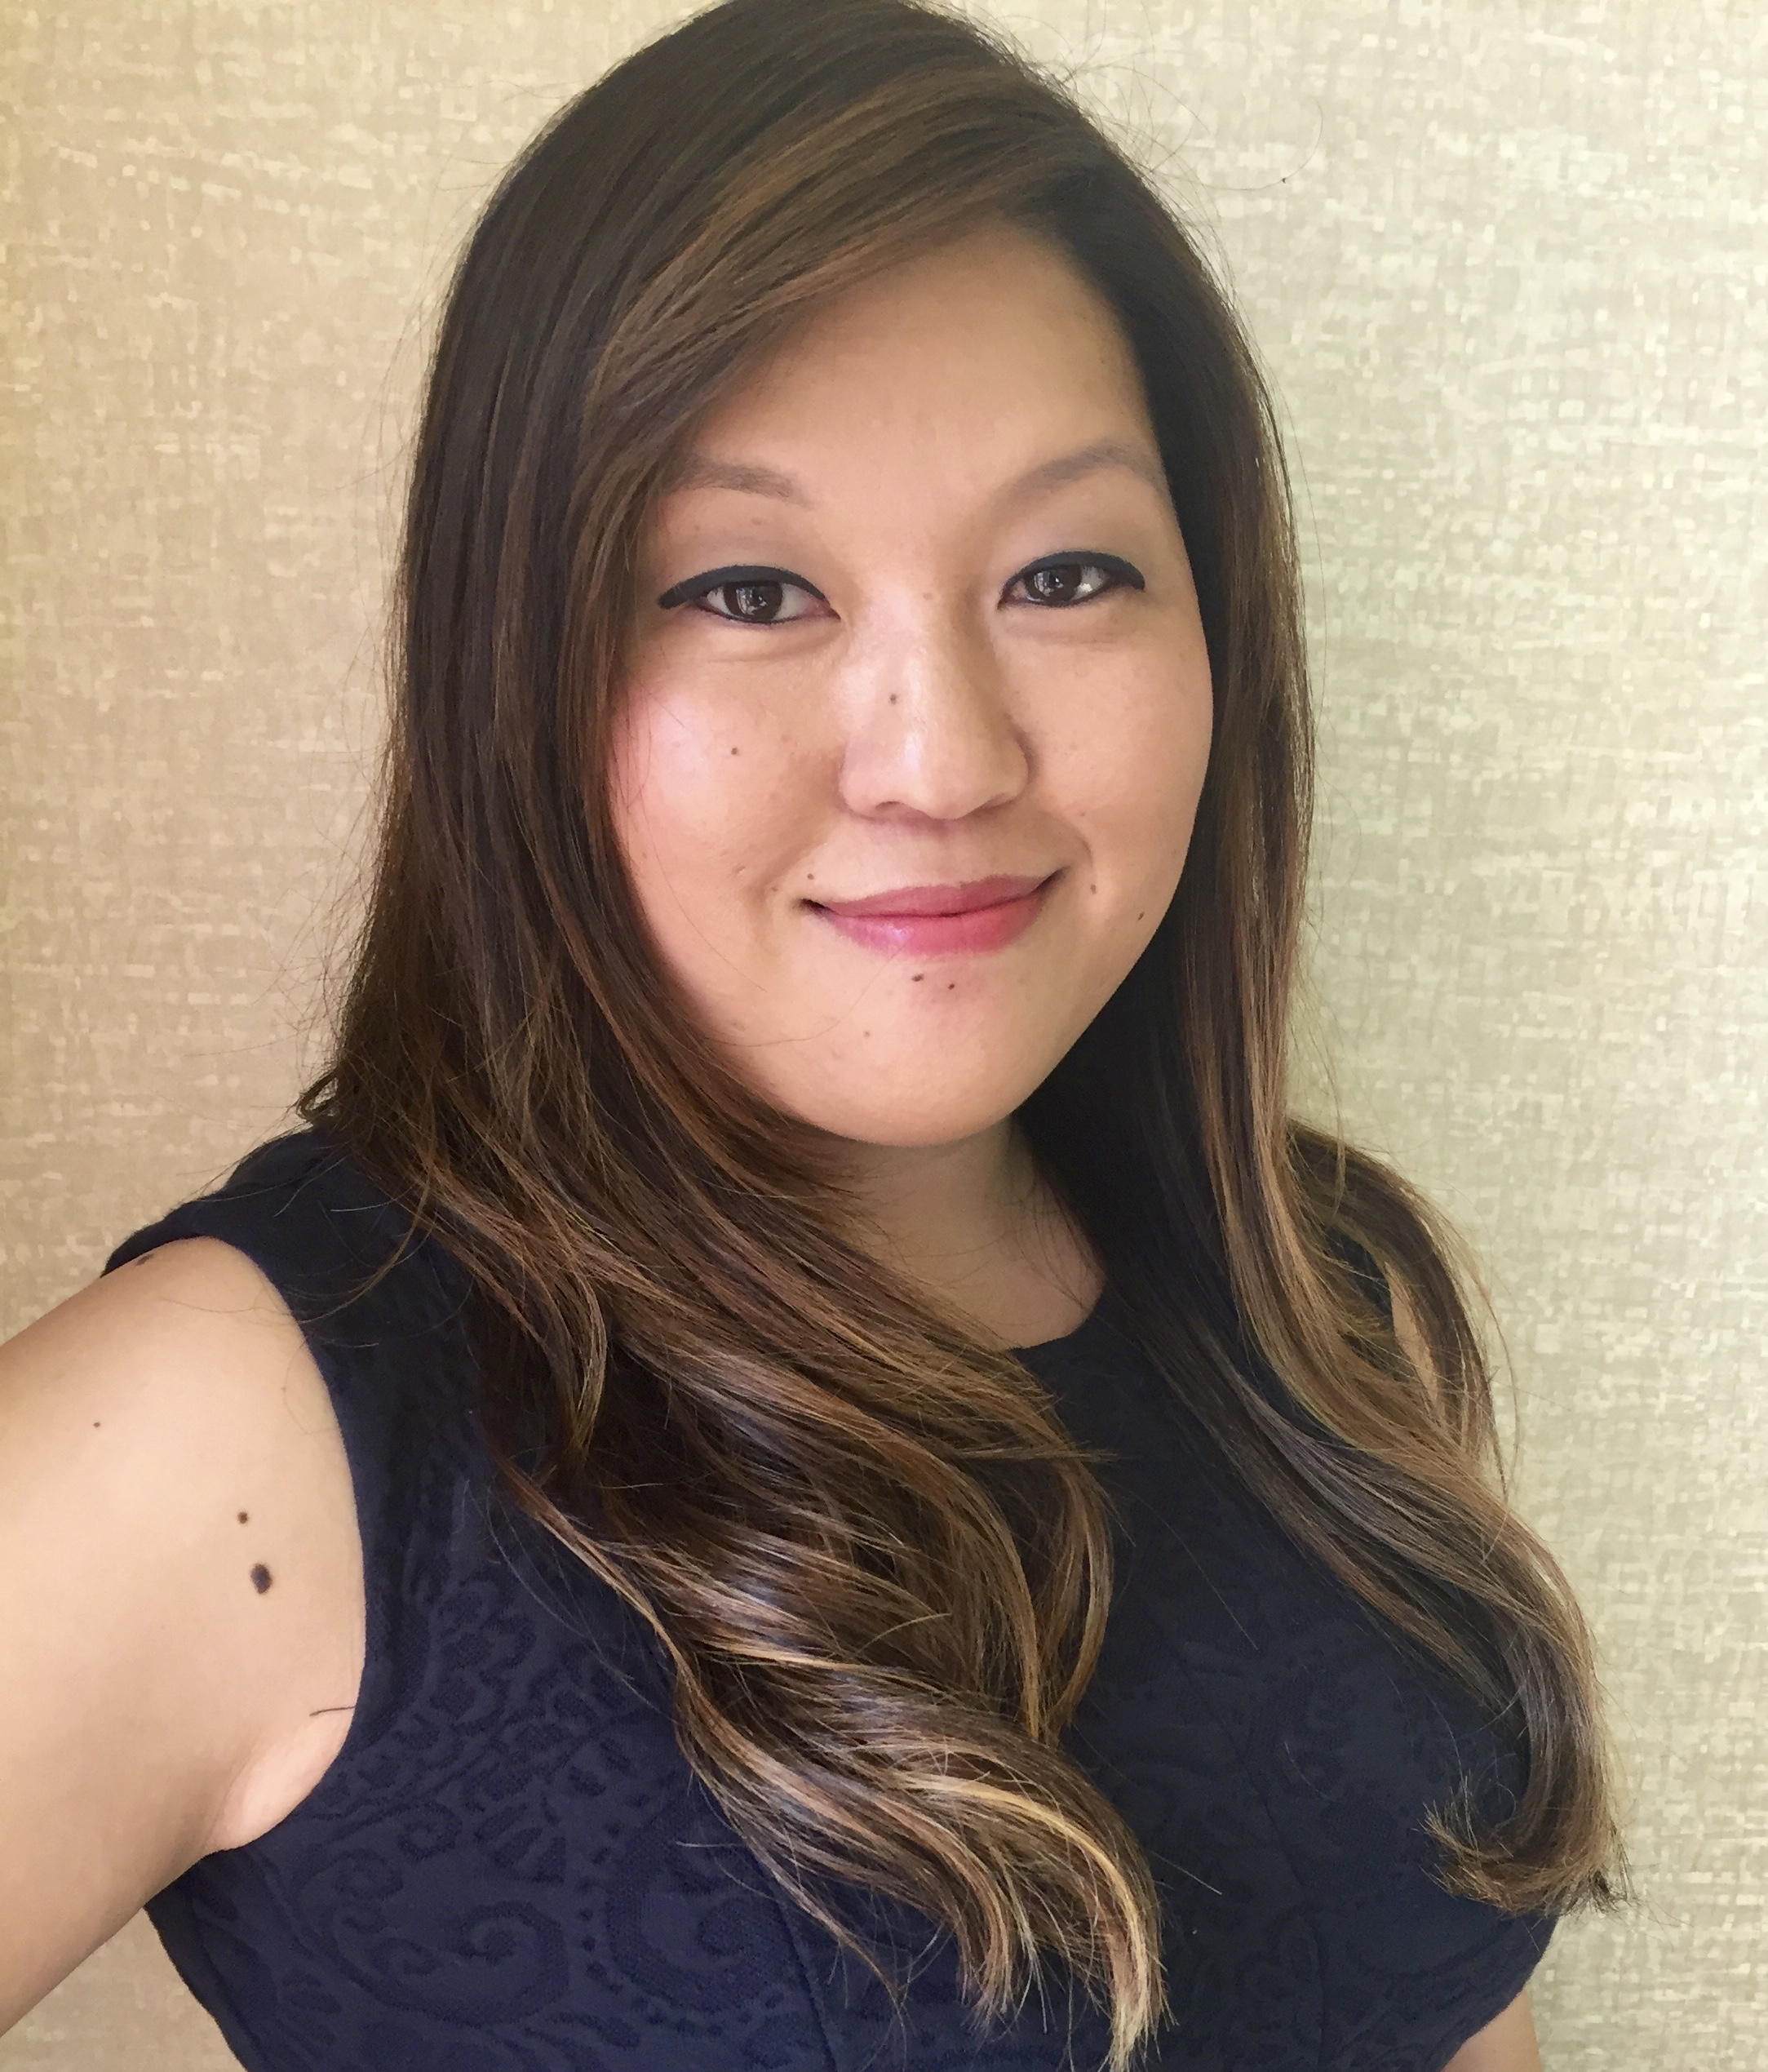 Q&A: KIMBERLY BROWER, FOUNDER AND LITERARY AGENT AT BROWER LITERARY & MANAGEMENT